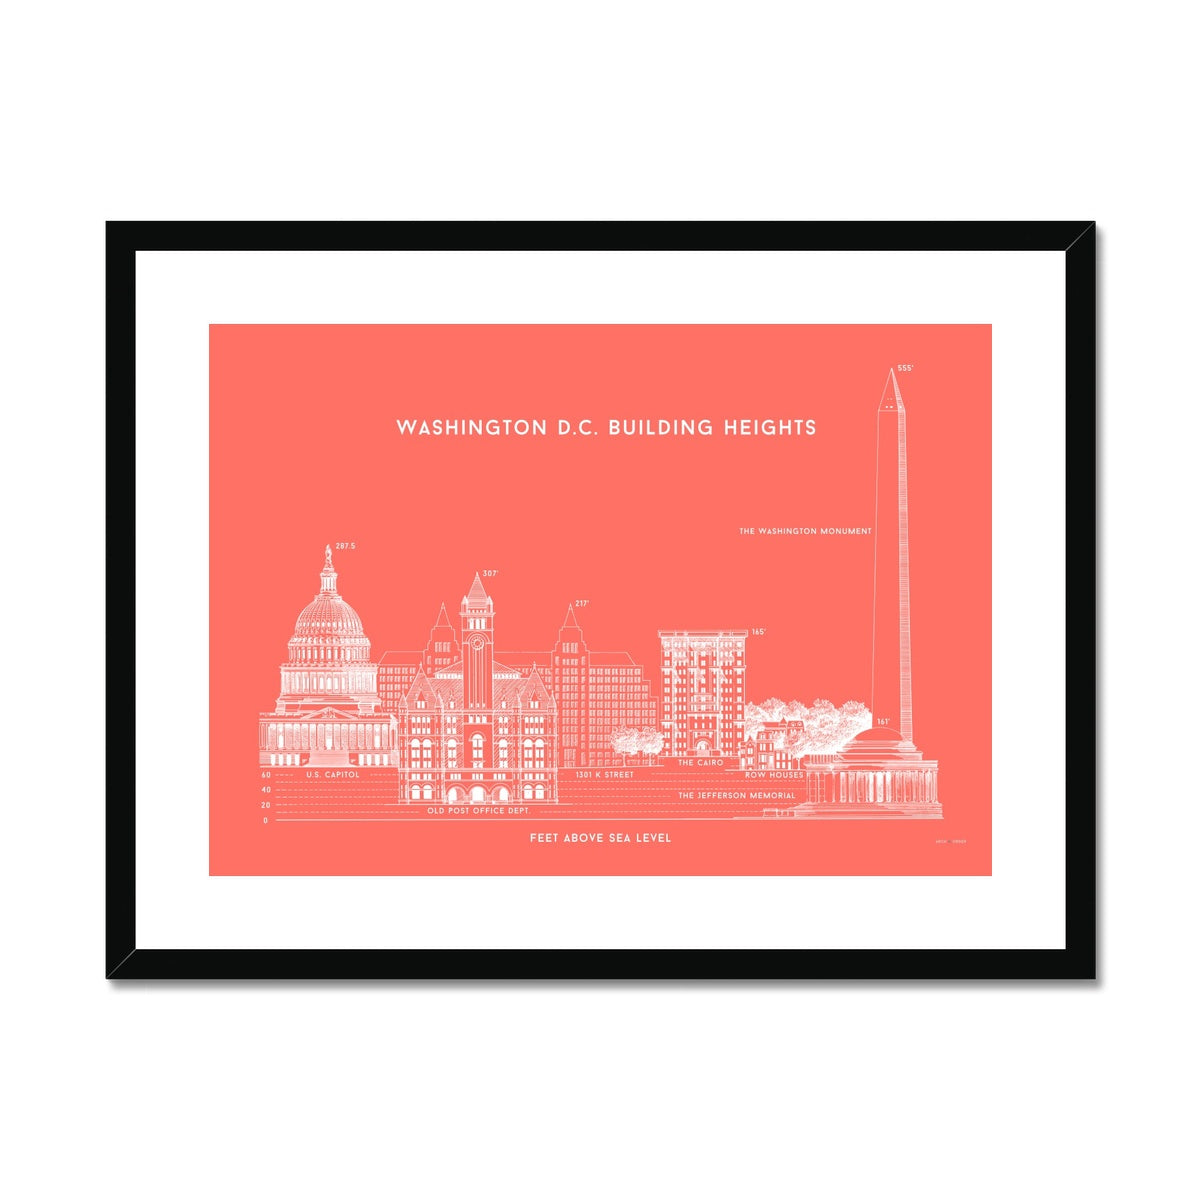 Washington D.C. Building Heights Comparison - Red -  Framed & Mounted Print